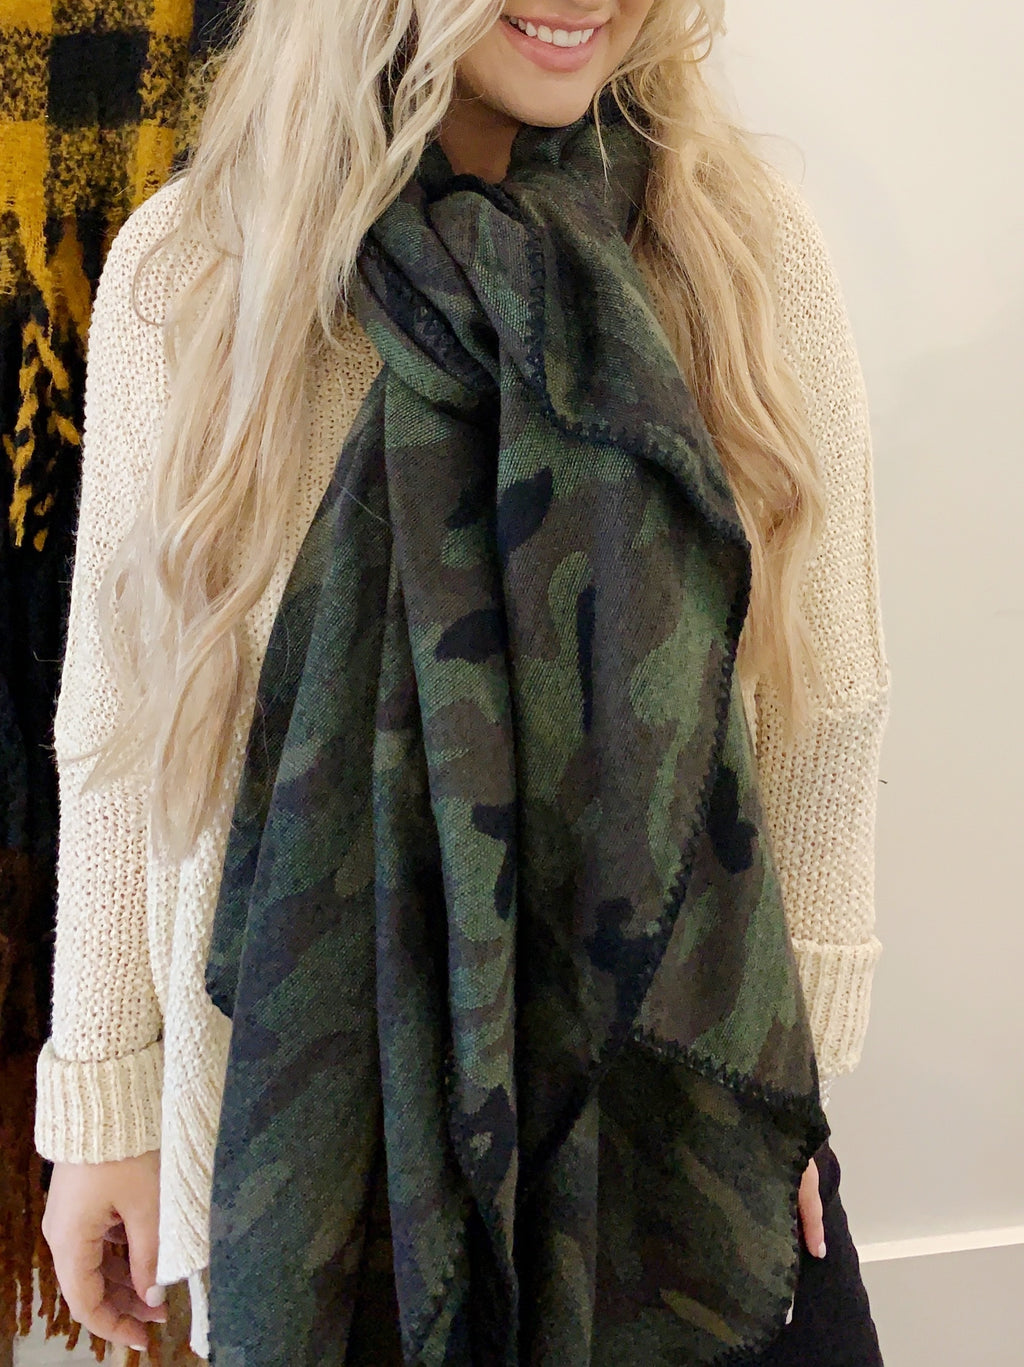 Camo Blanket Scarf